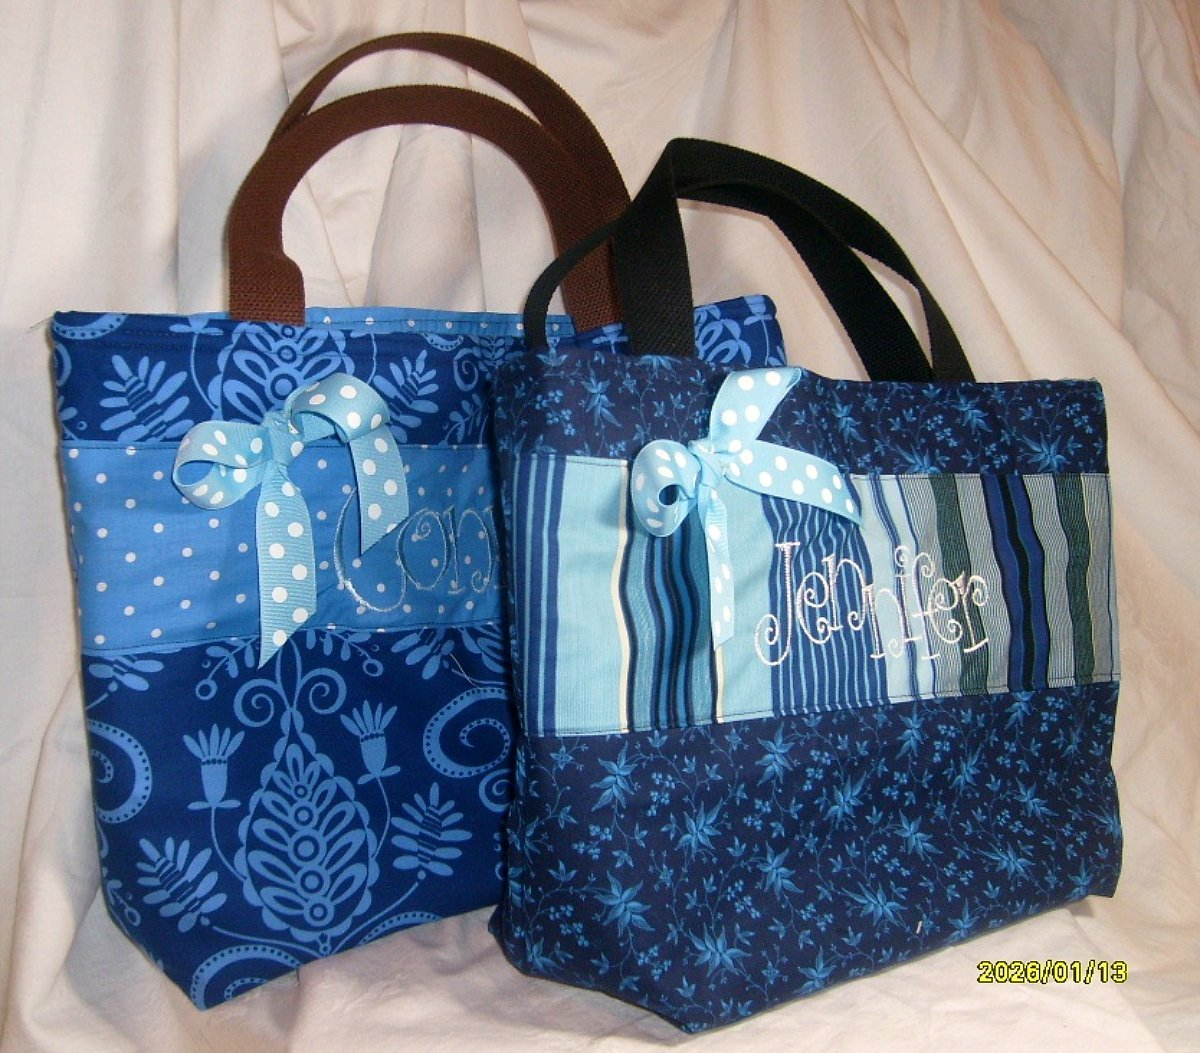 Bridesmaids, Bridesmaids Dresses, Fashion, blue, Monogram, Custom, Purse, Bag, Personalized, Tote, Chamberrycherrydesigns